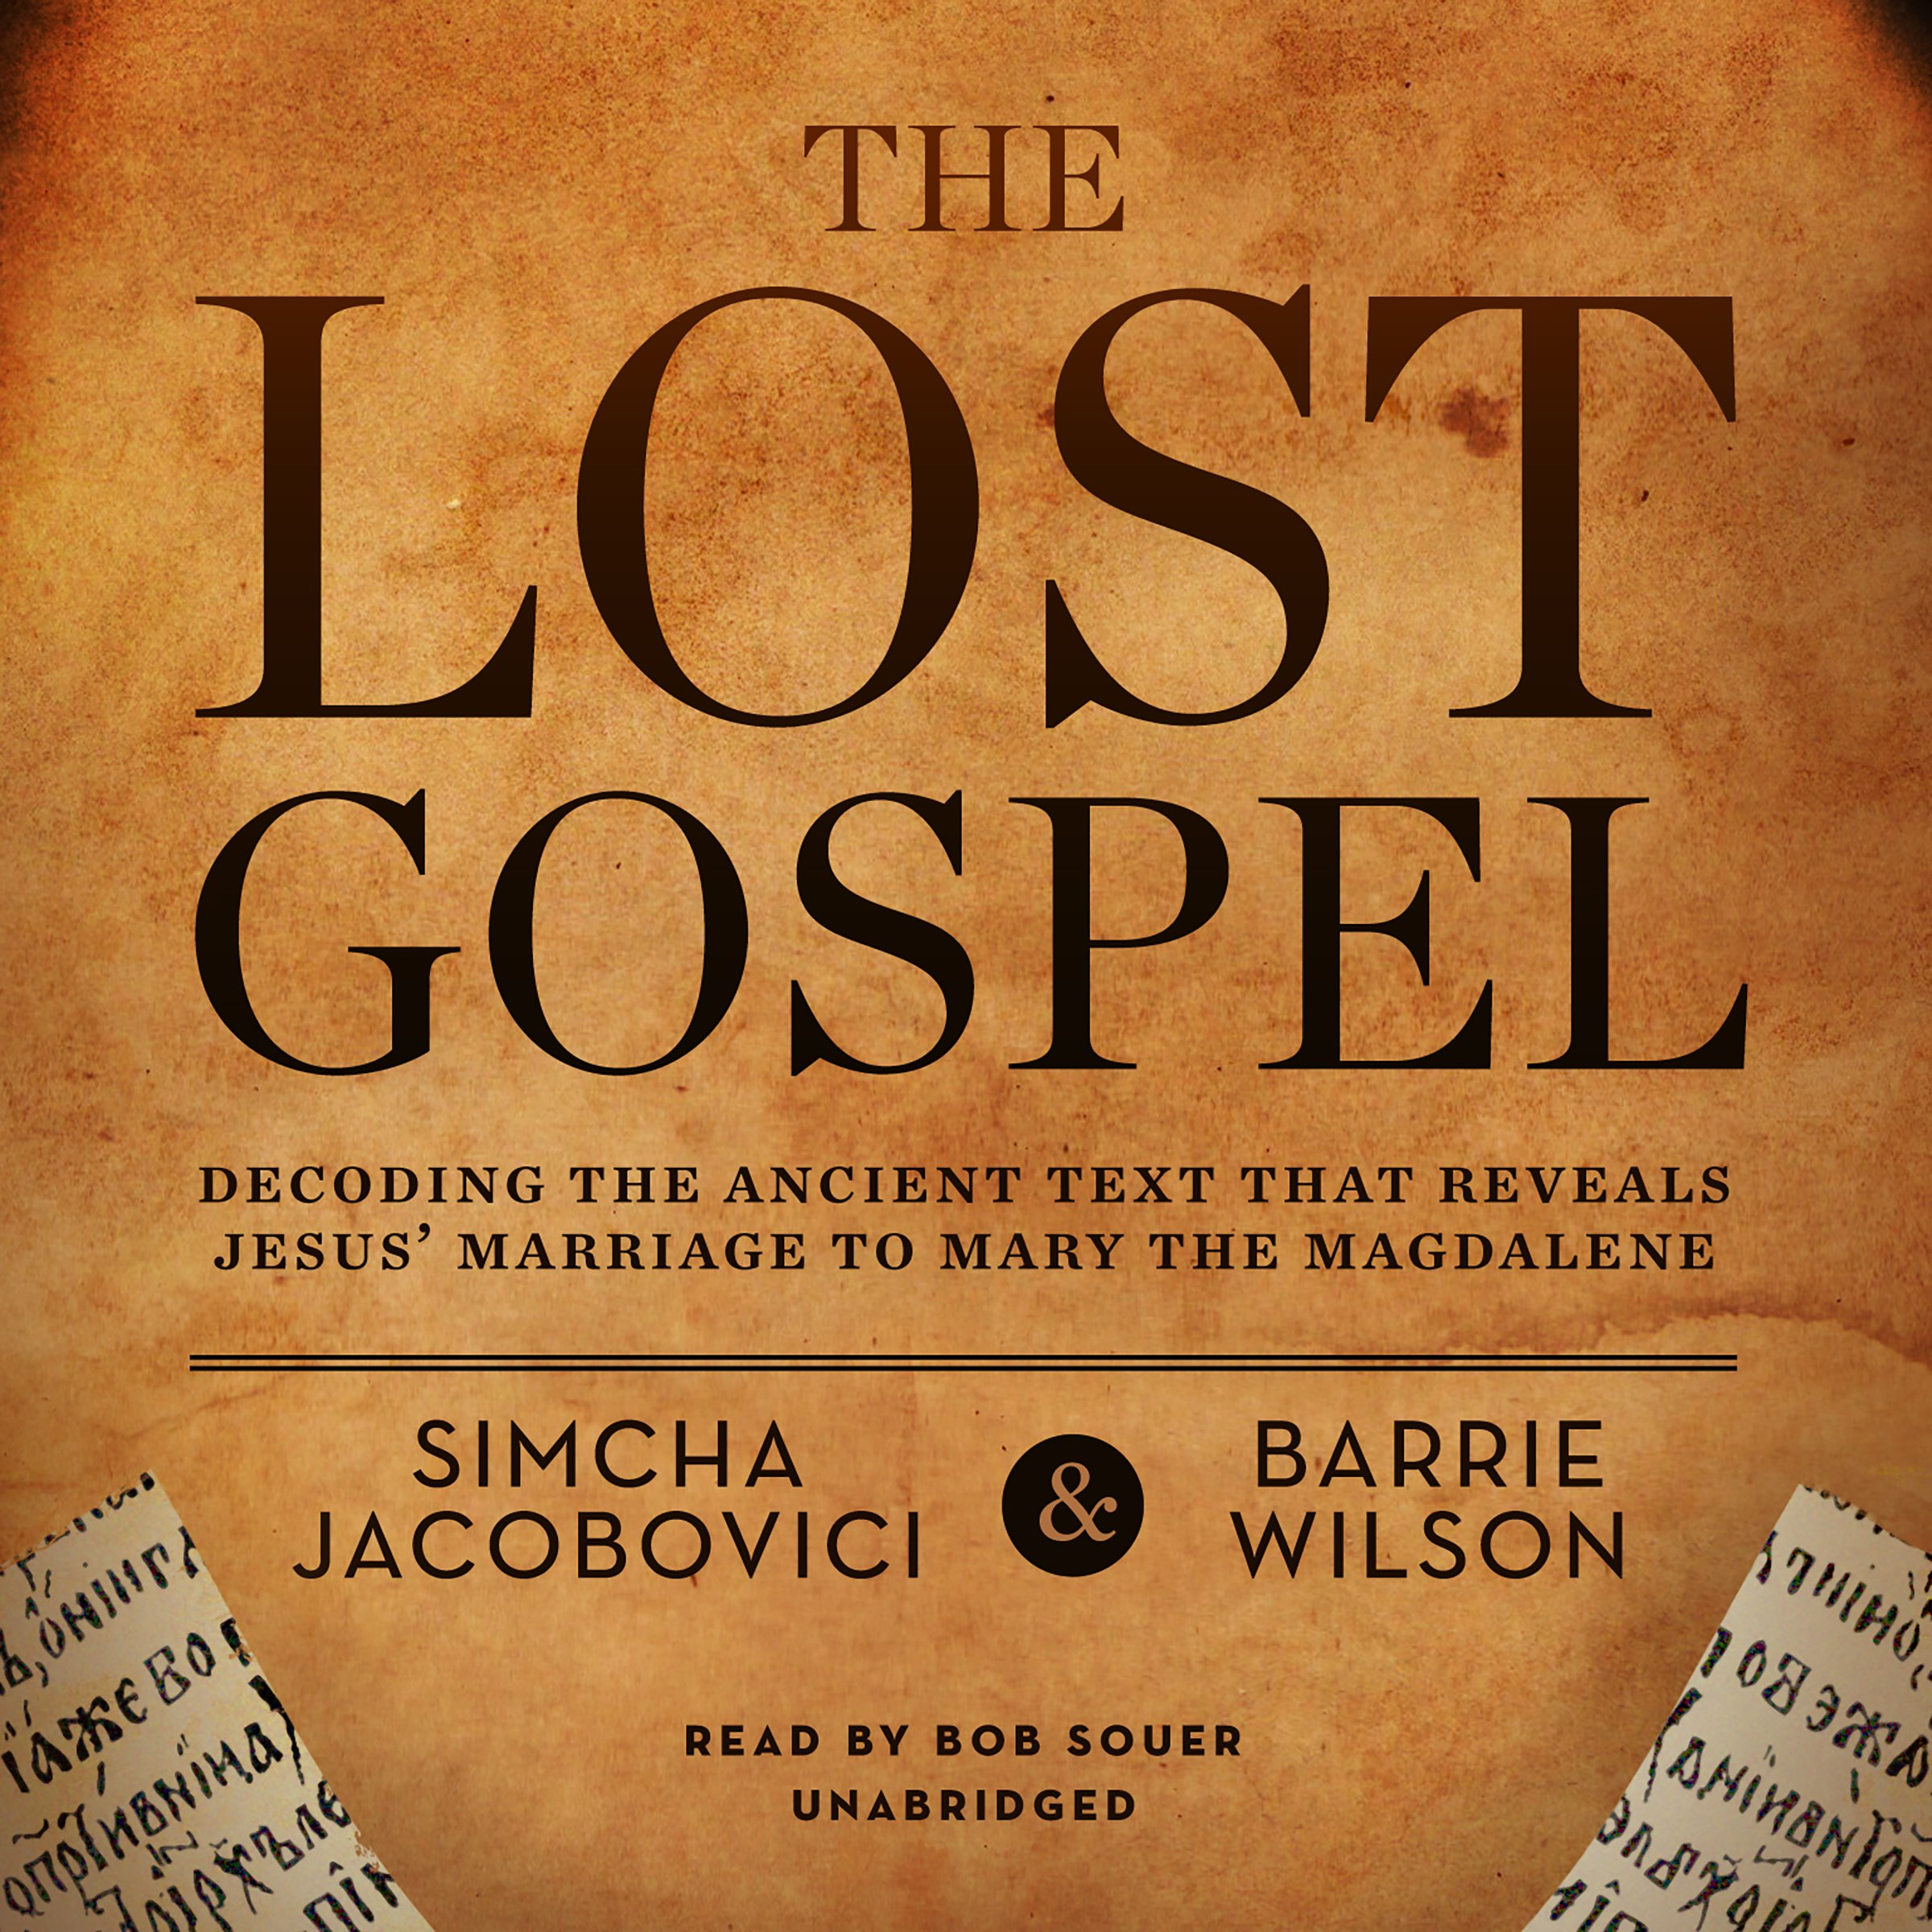 The Lost Gospel Decoding The Ancient Text That Reveals Jesus